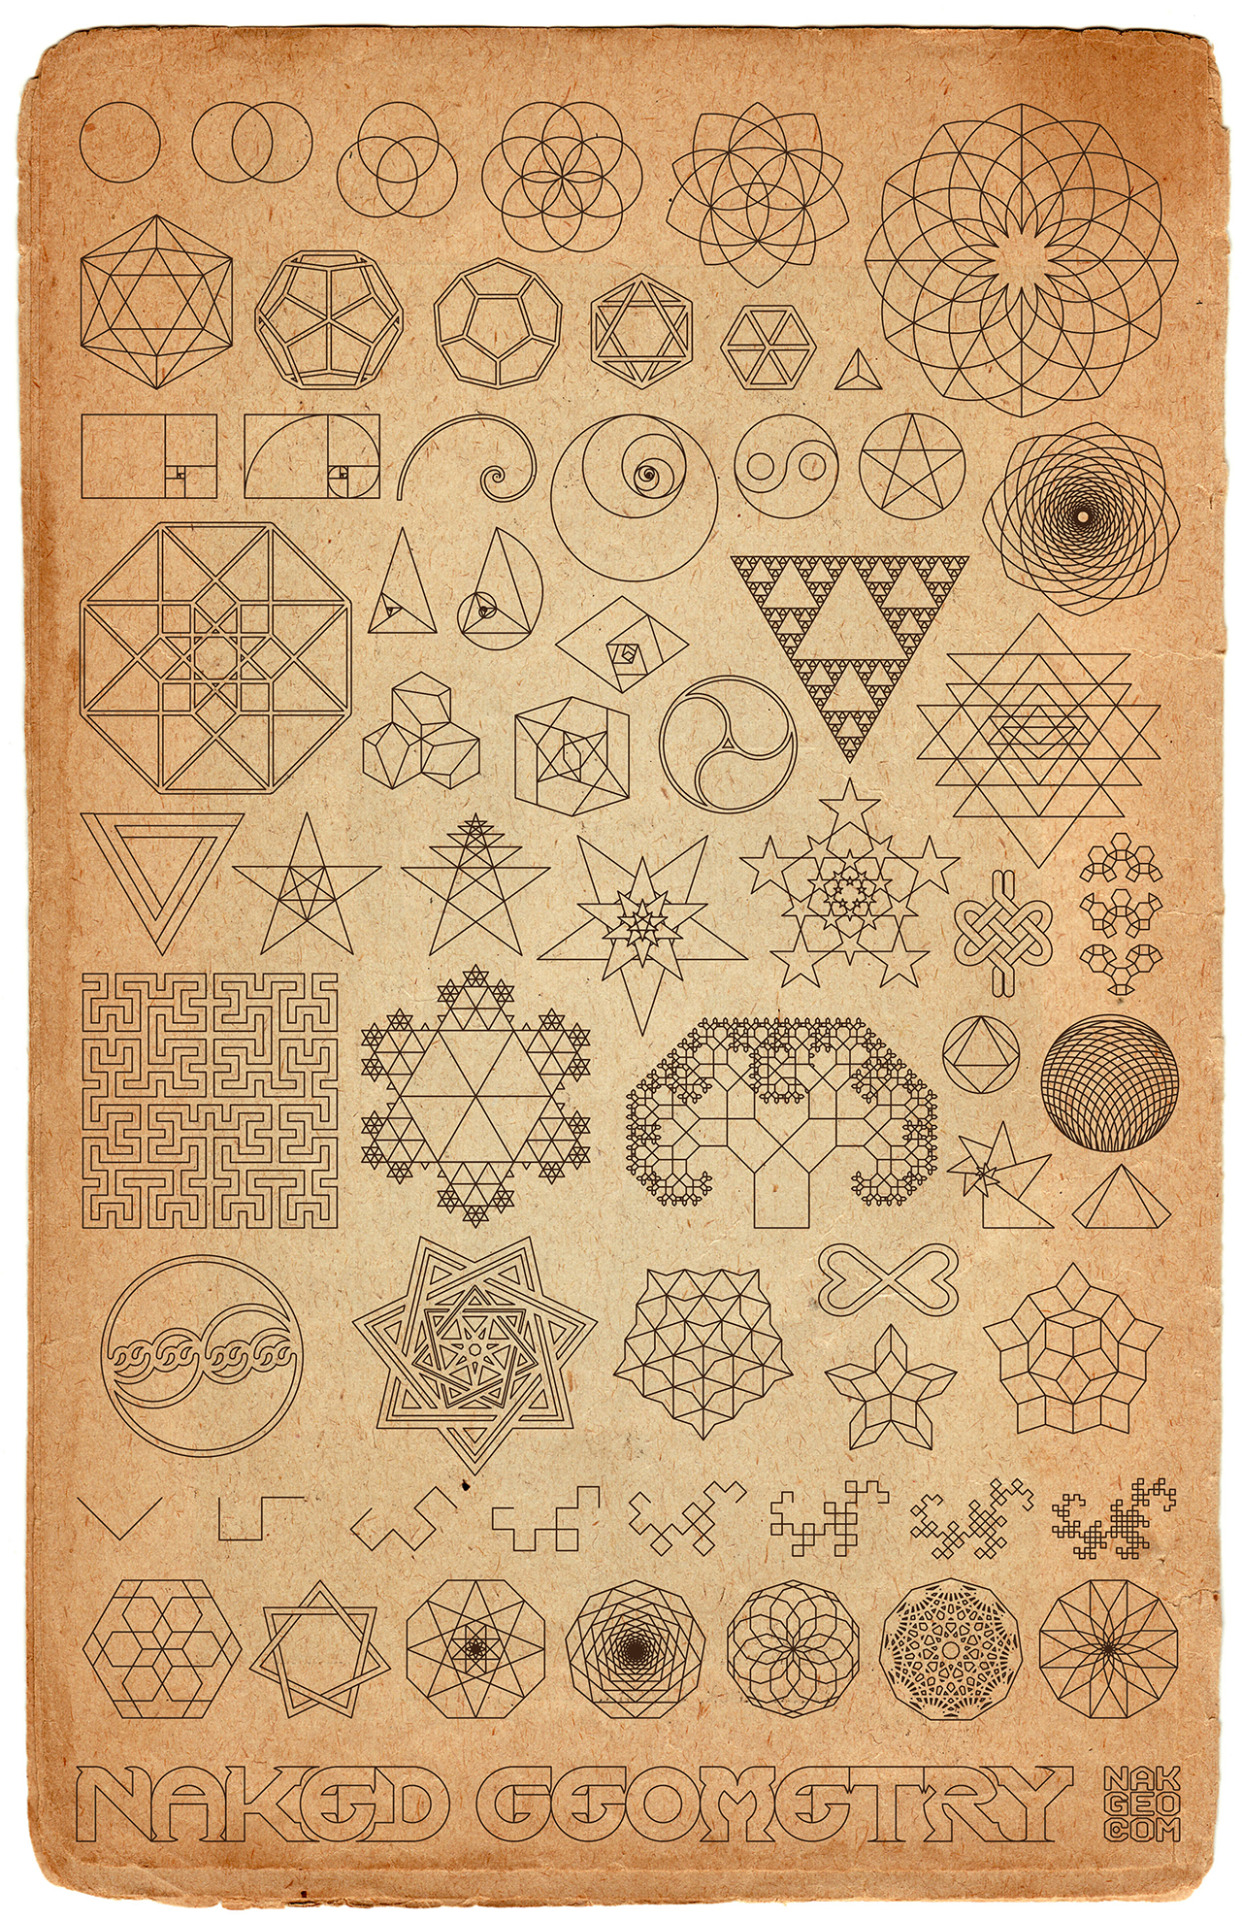 "thatveiledgazelle:  ""Old World Sketchbook"" ∆ Naked Geometry ∆ prints here"